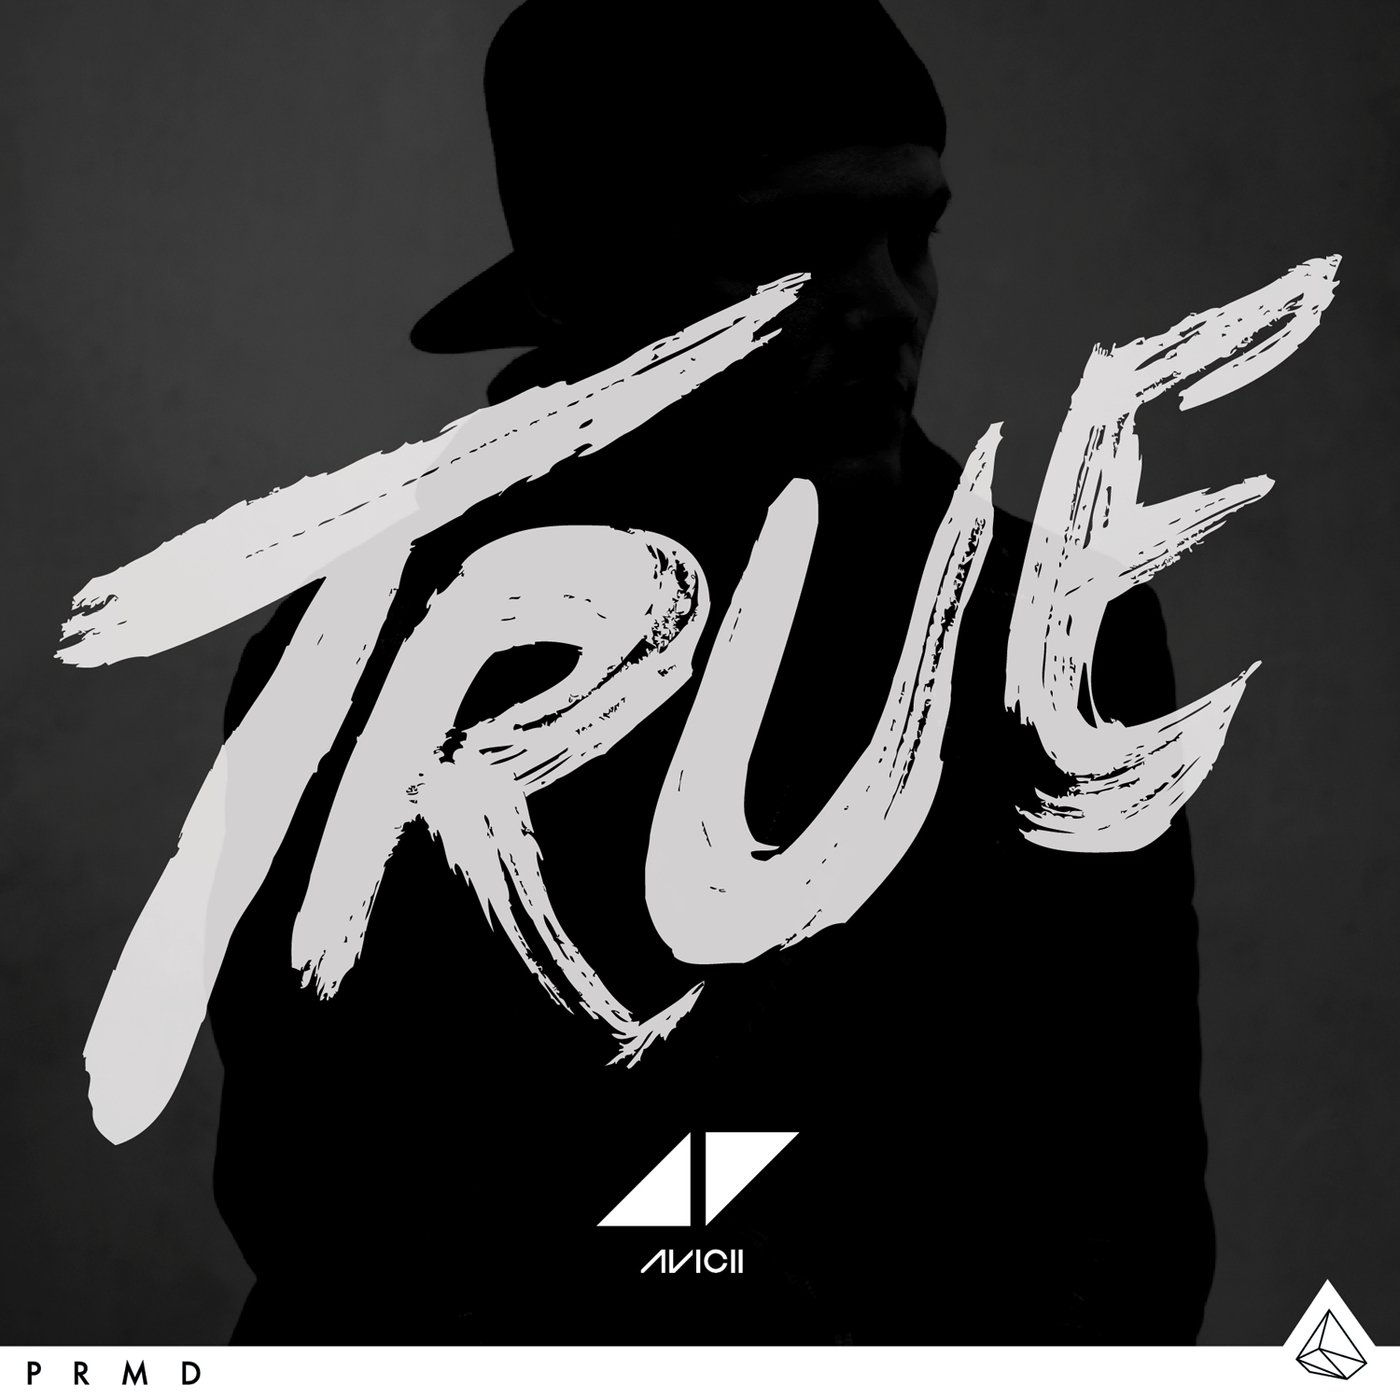 True / Avicii